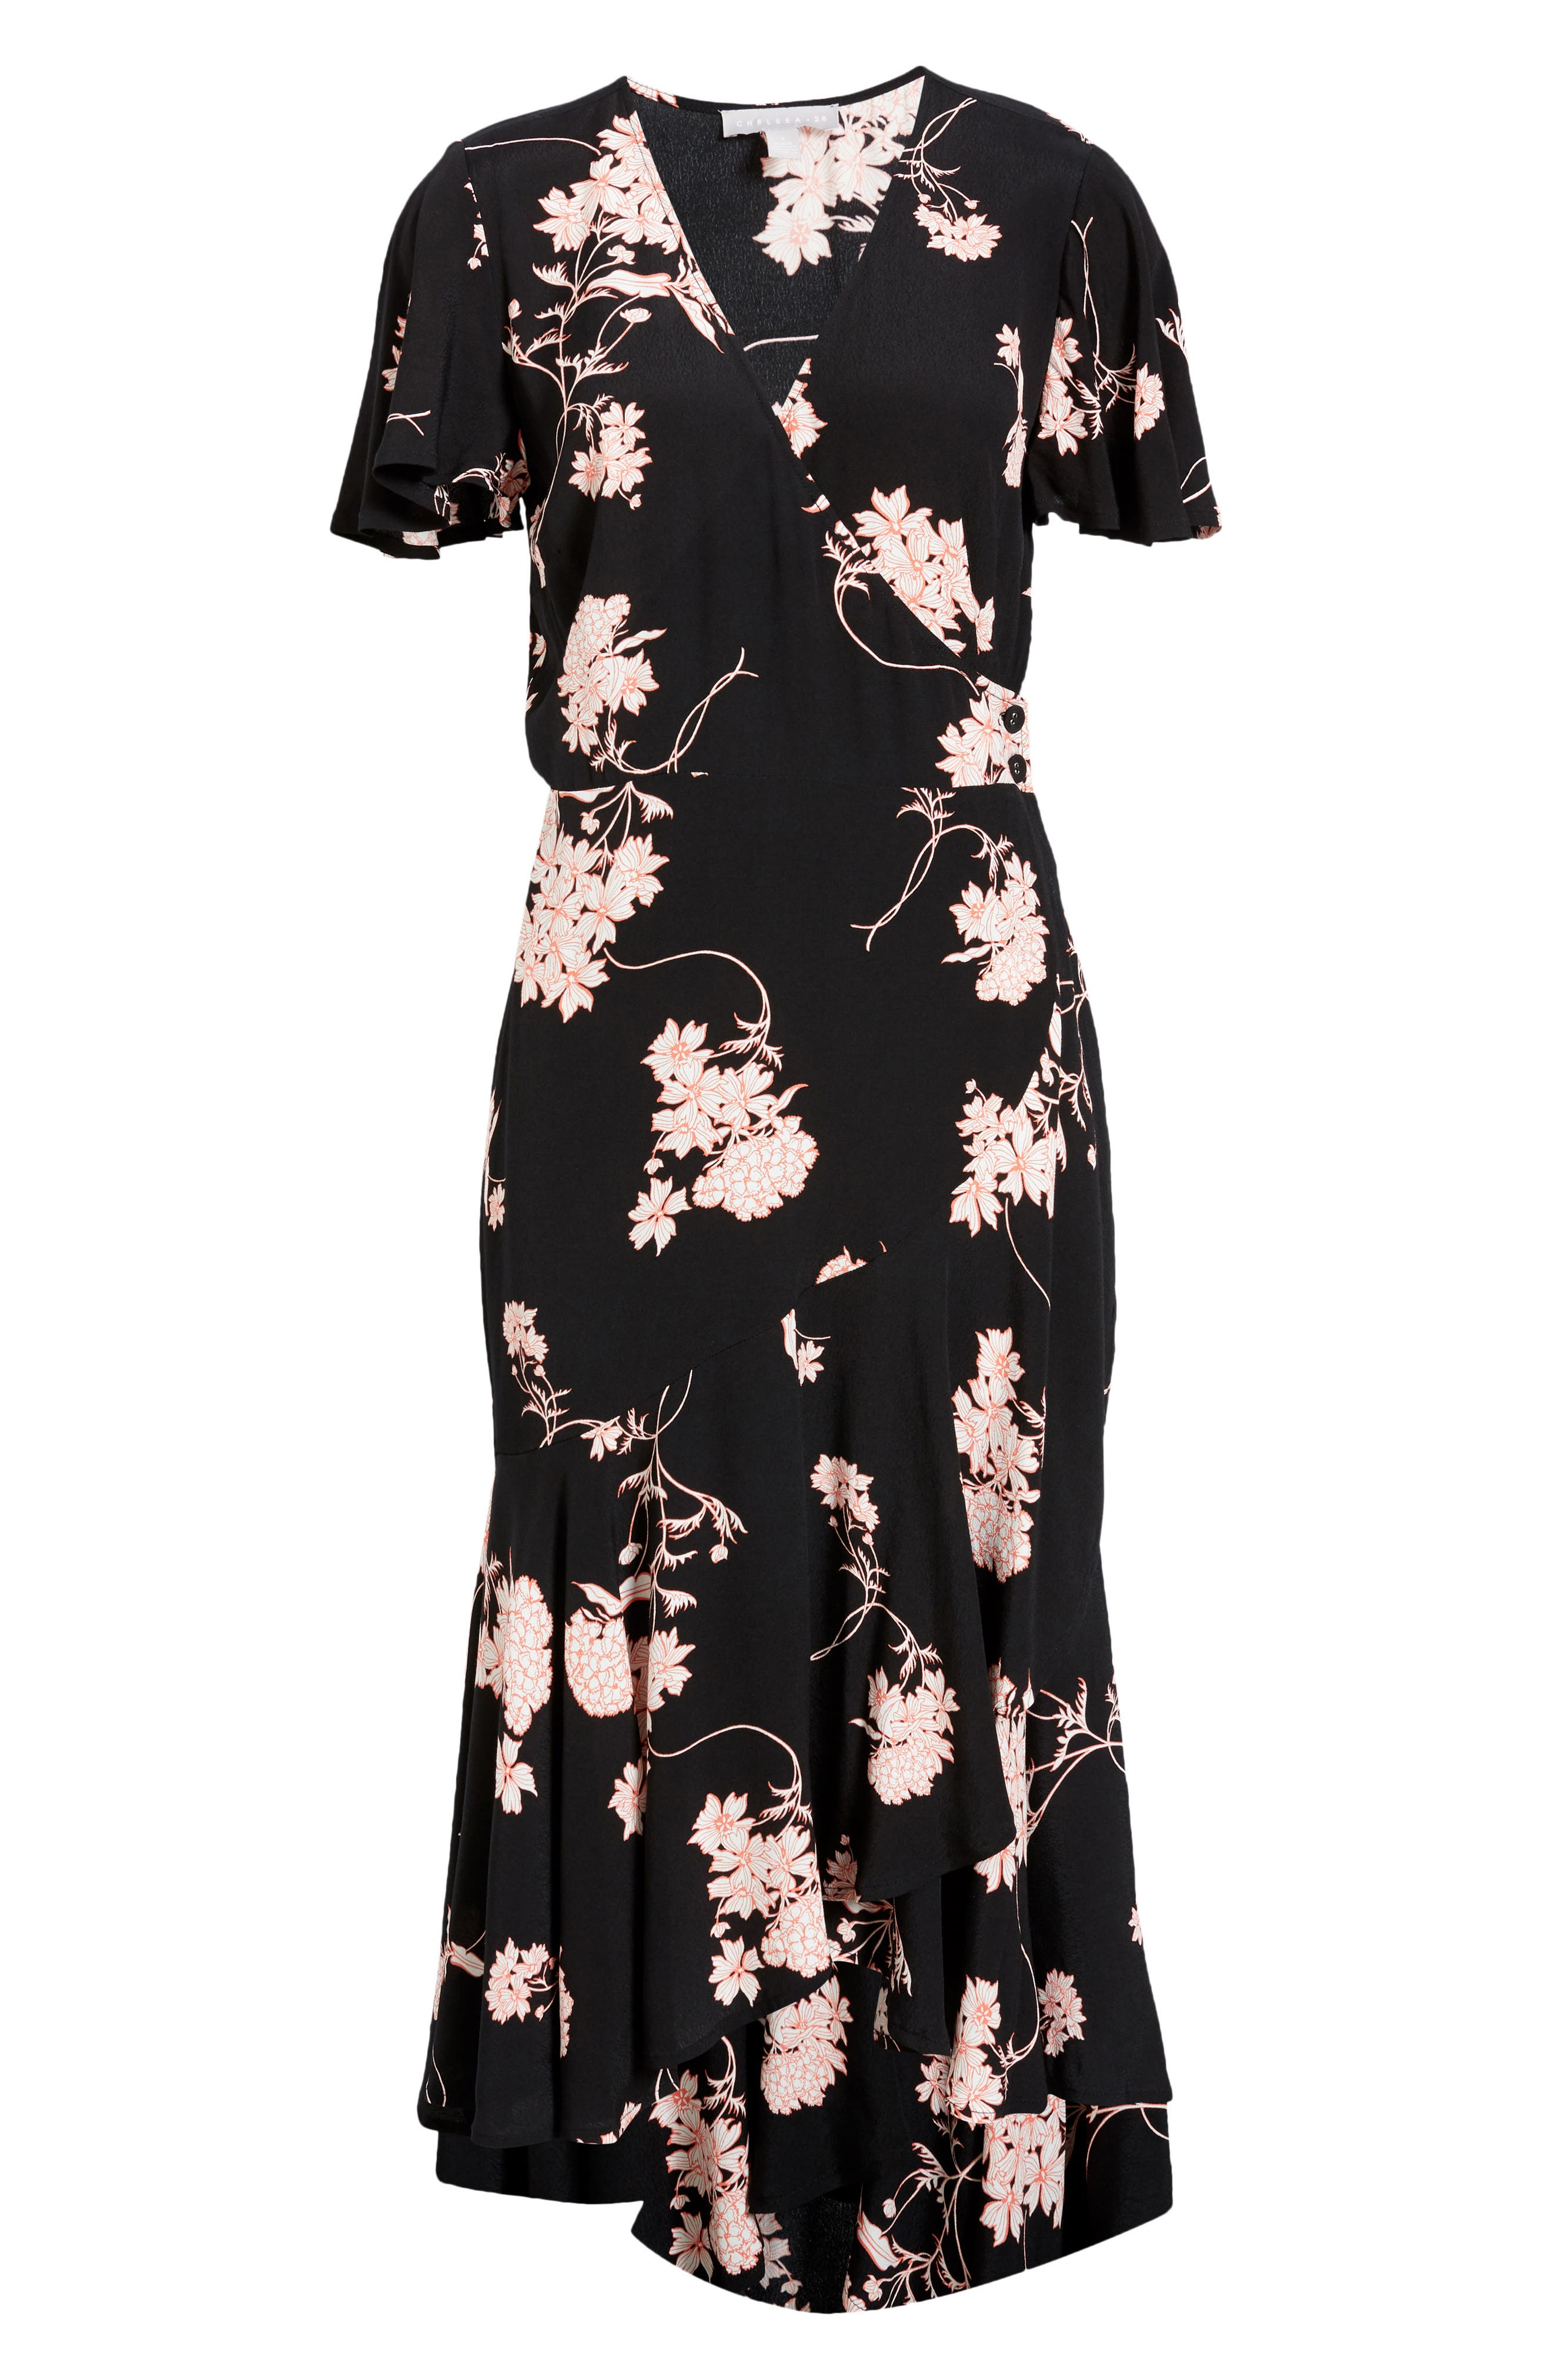 A cascading, ruffled hem brings twirl-worthy movement to a work-to-weekend dress with a wrap-inspired silhouette that buttons at the side. Style Name: Chelsea28 Ruffle Dress. Style Number: 5975221. Available in stores.